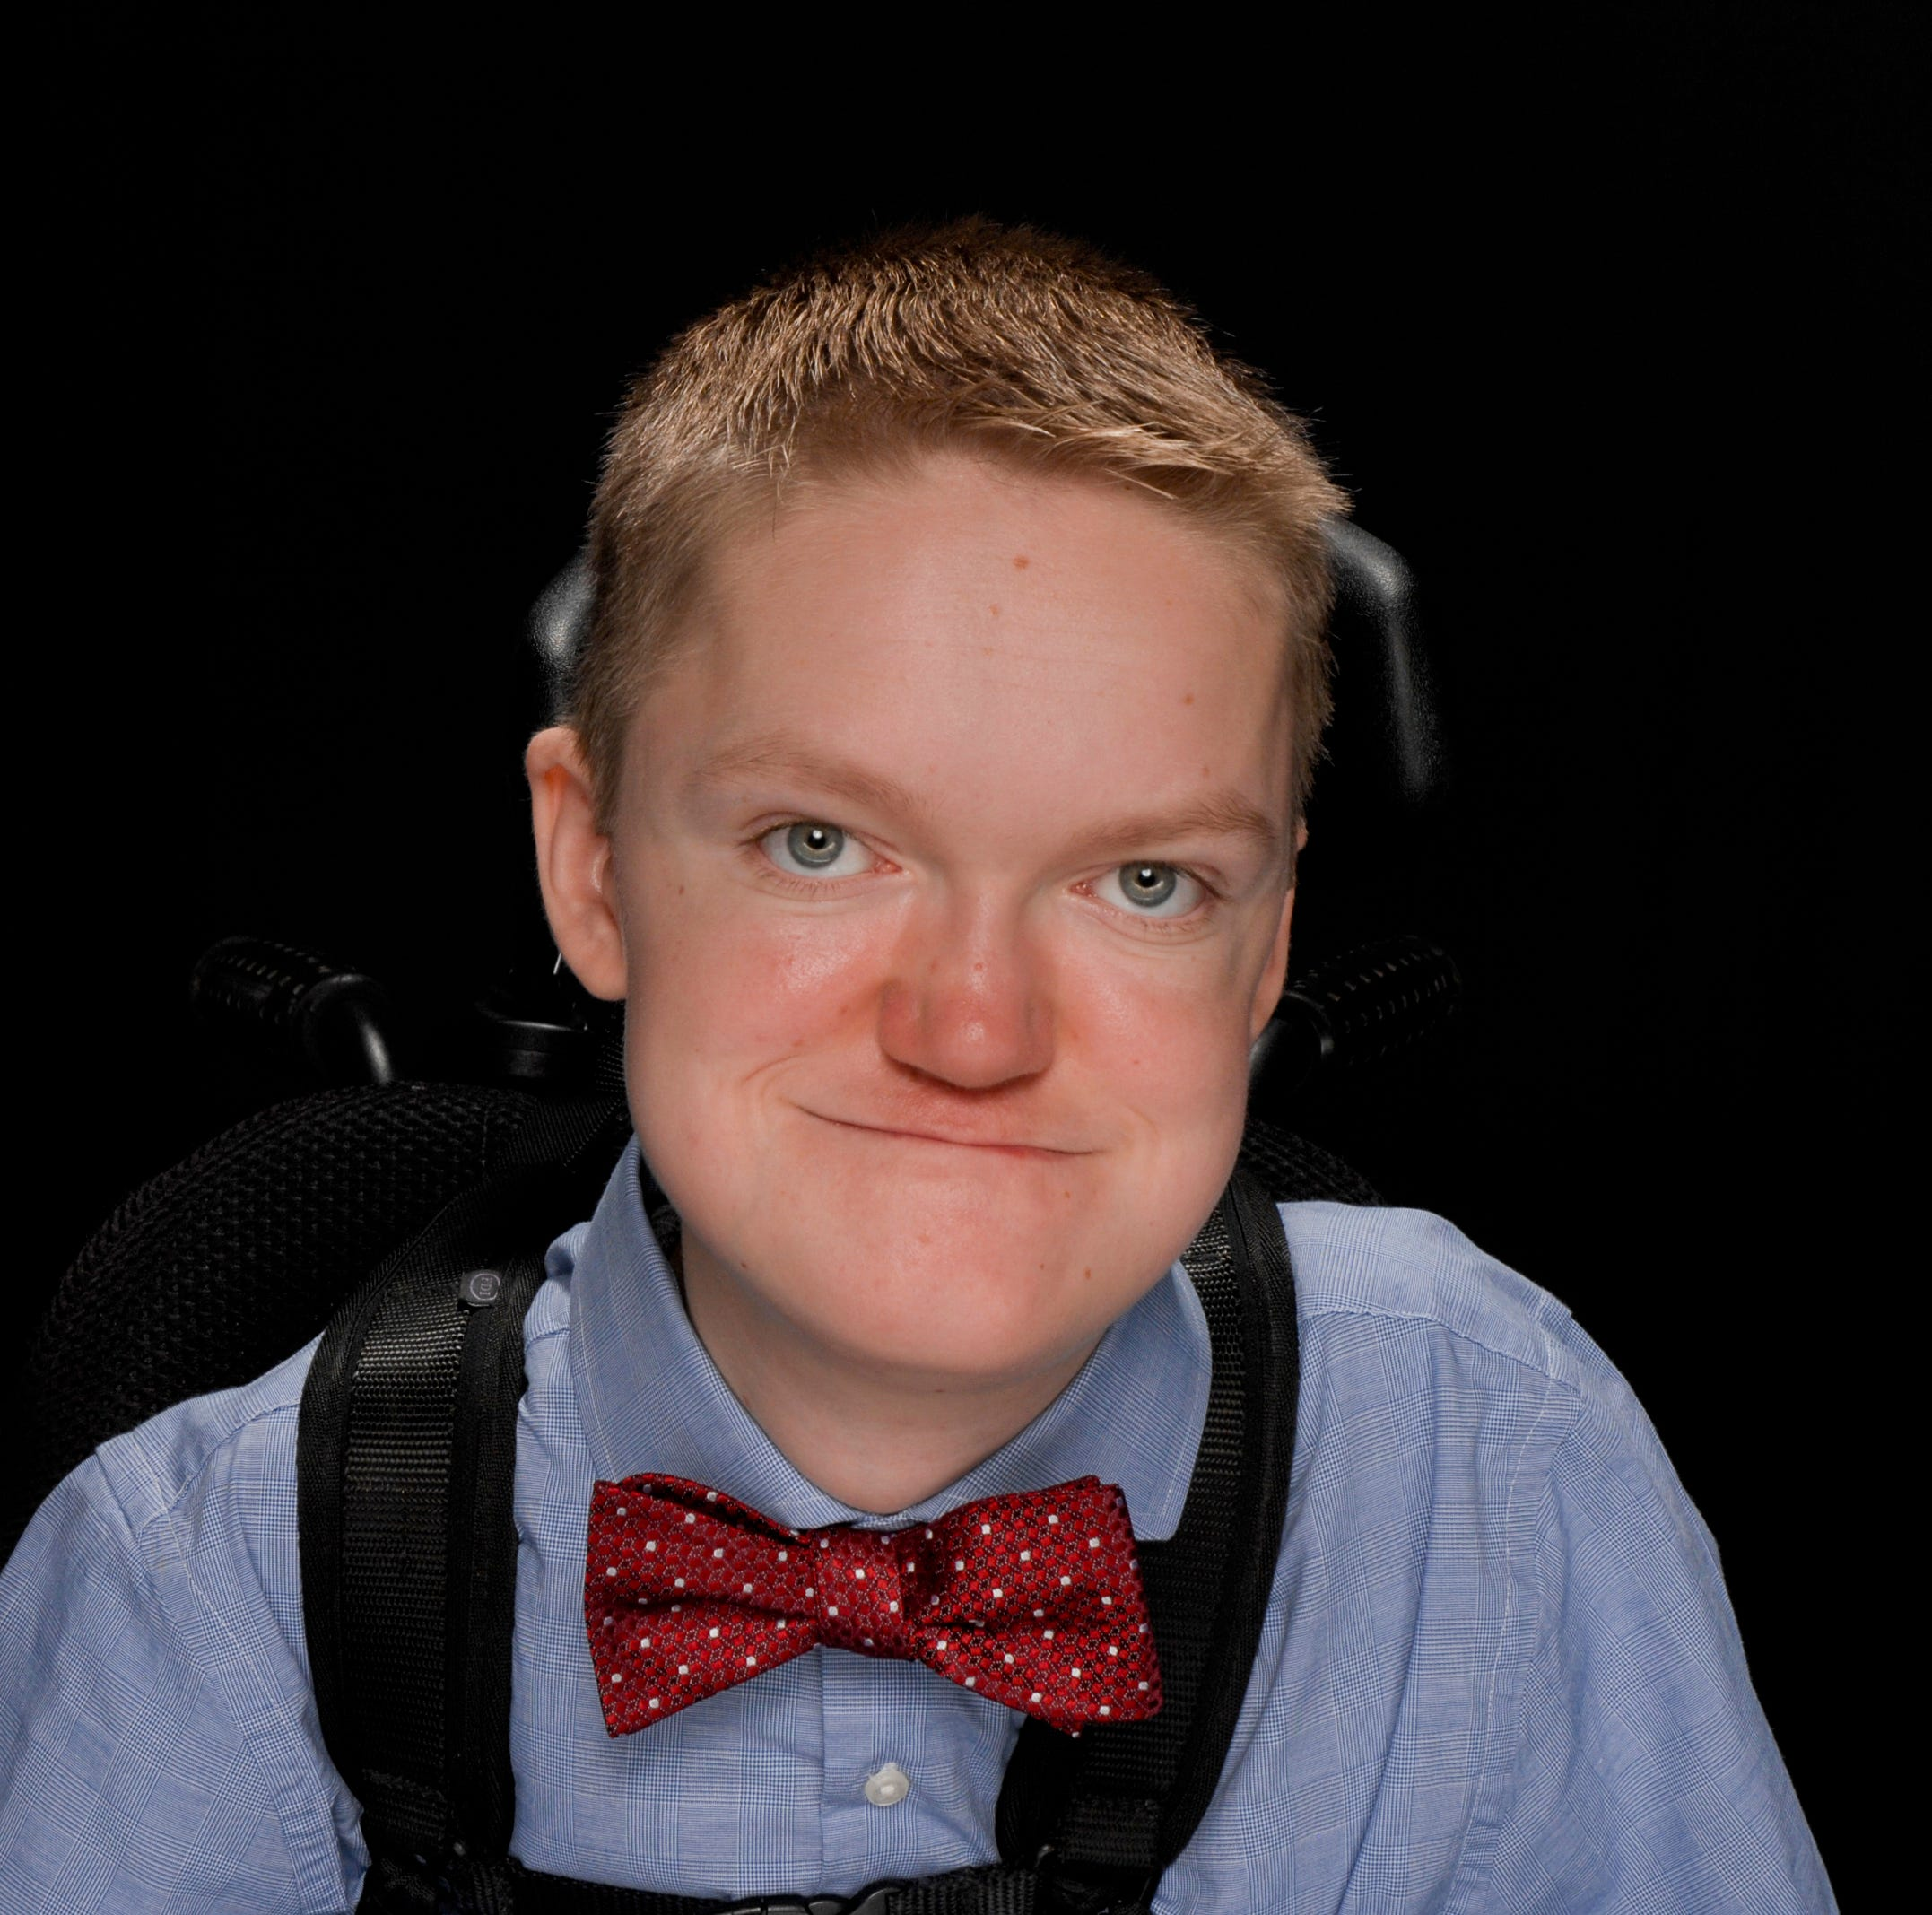 17-year-old boy who defied odds and inspired medical facility has died